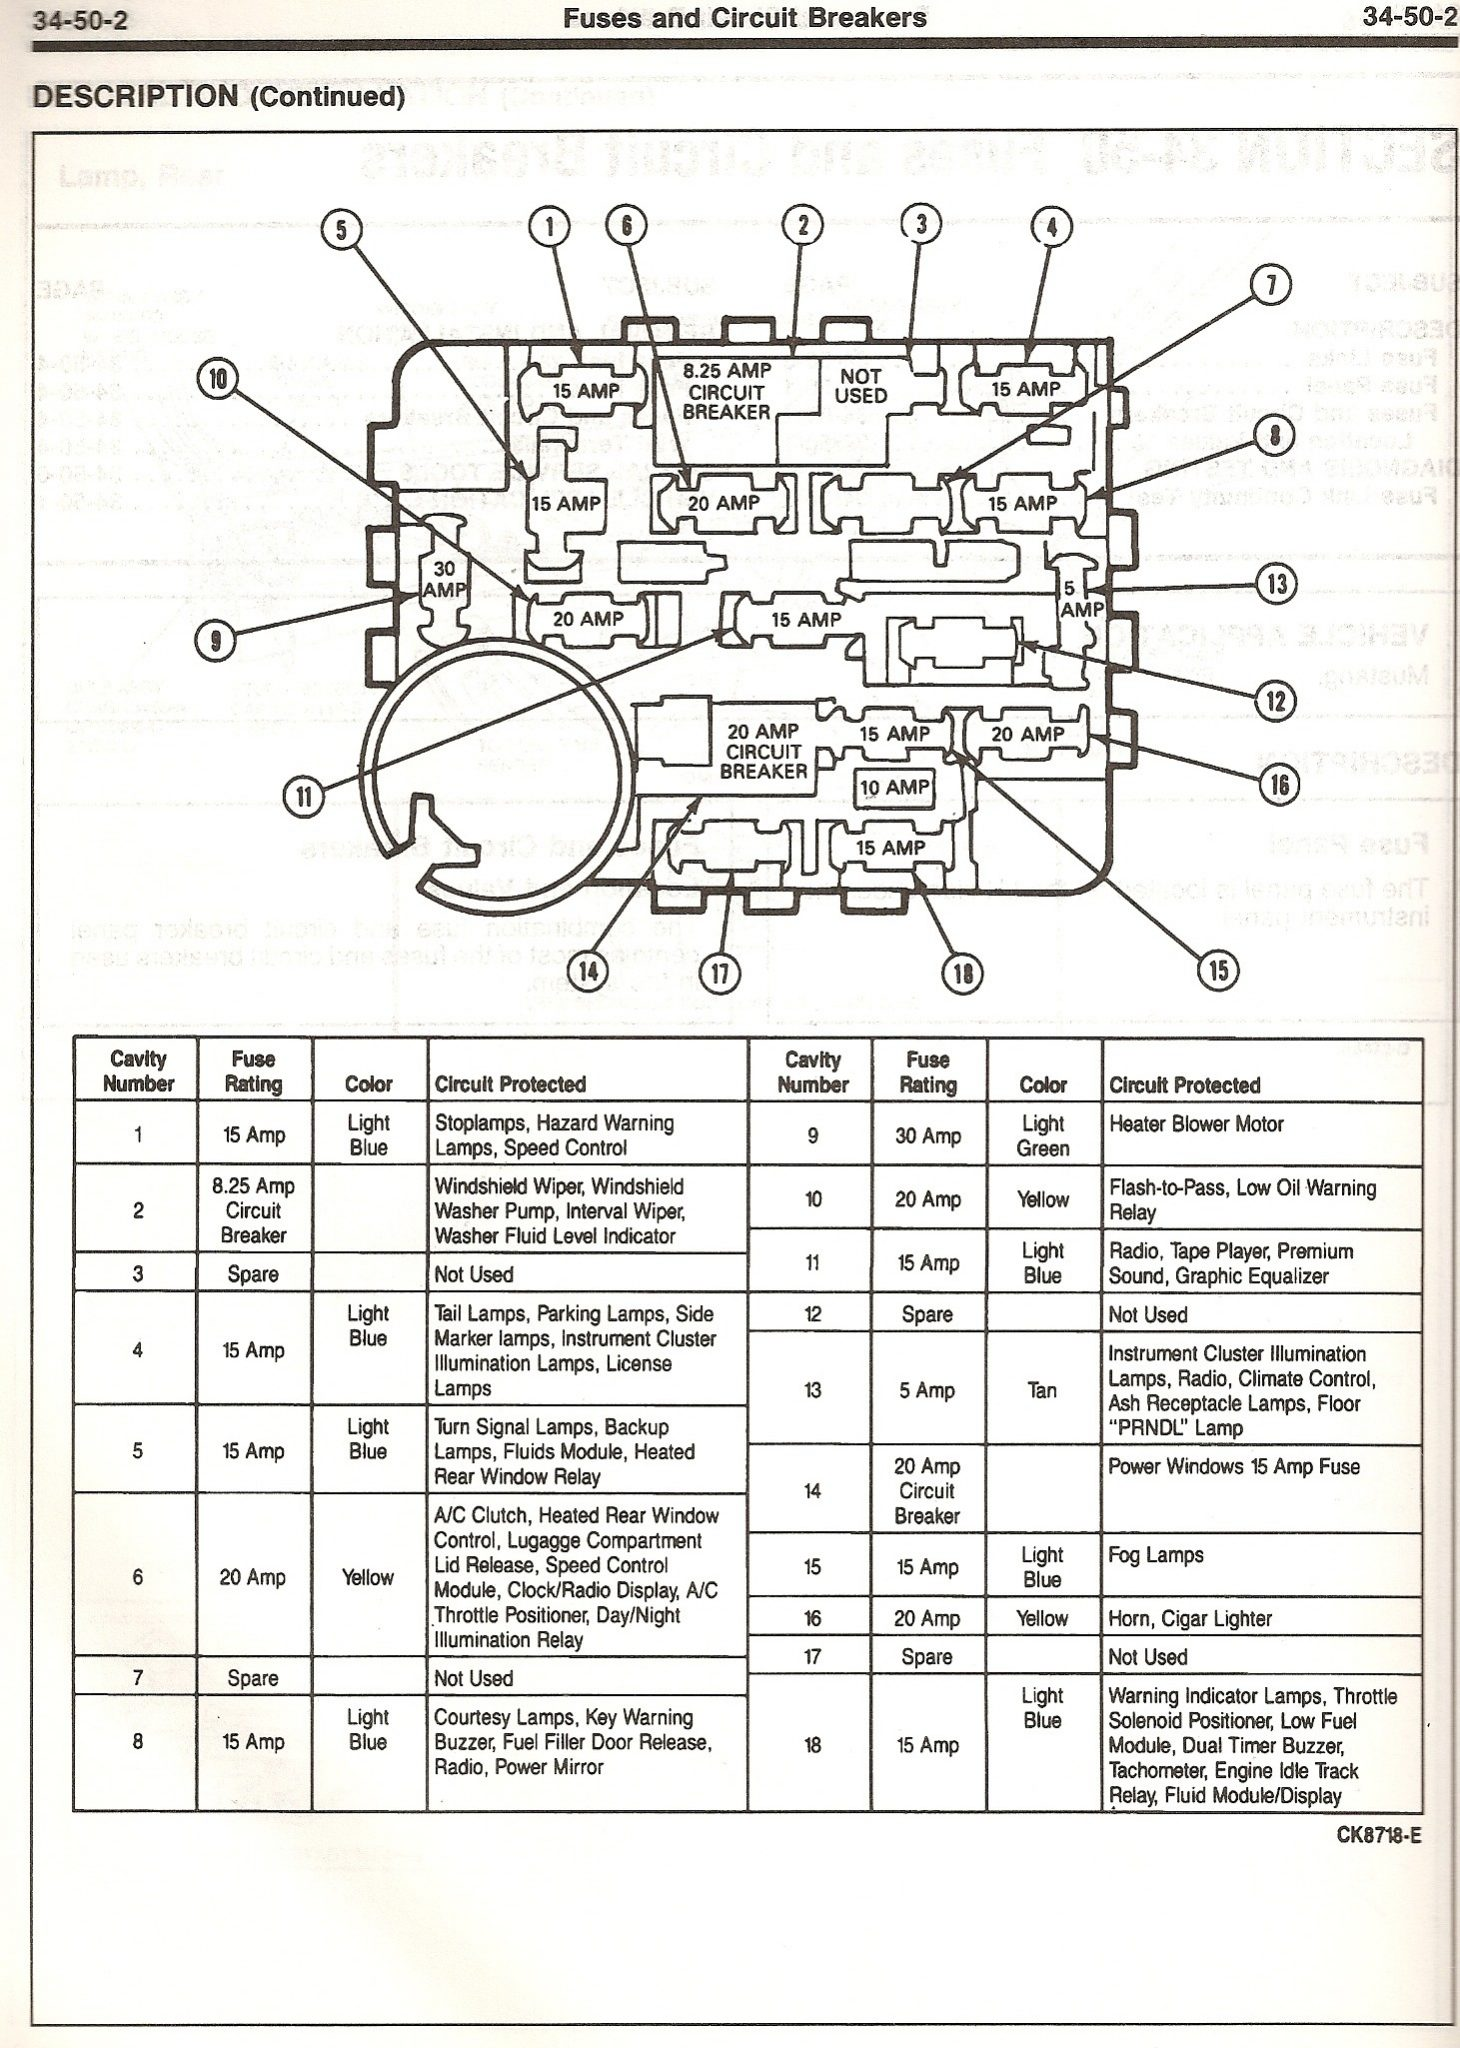 90 2pont3 mustang fuse panel dash diagram 1990 2 3l mustang engine bay fuse diagram 93 mustang fuse box diagram at eliteediting.co